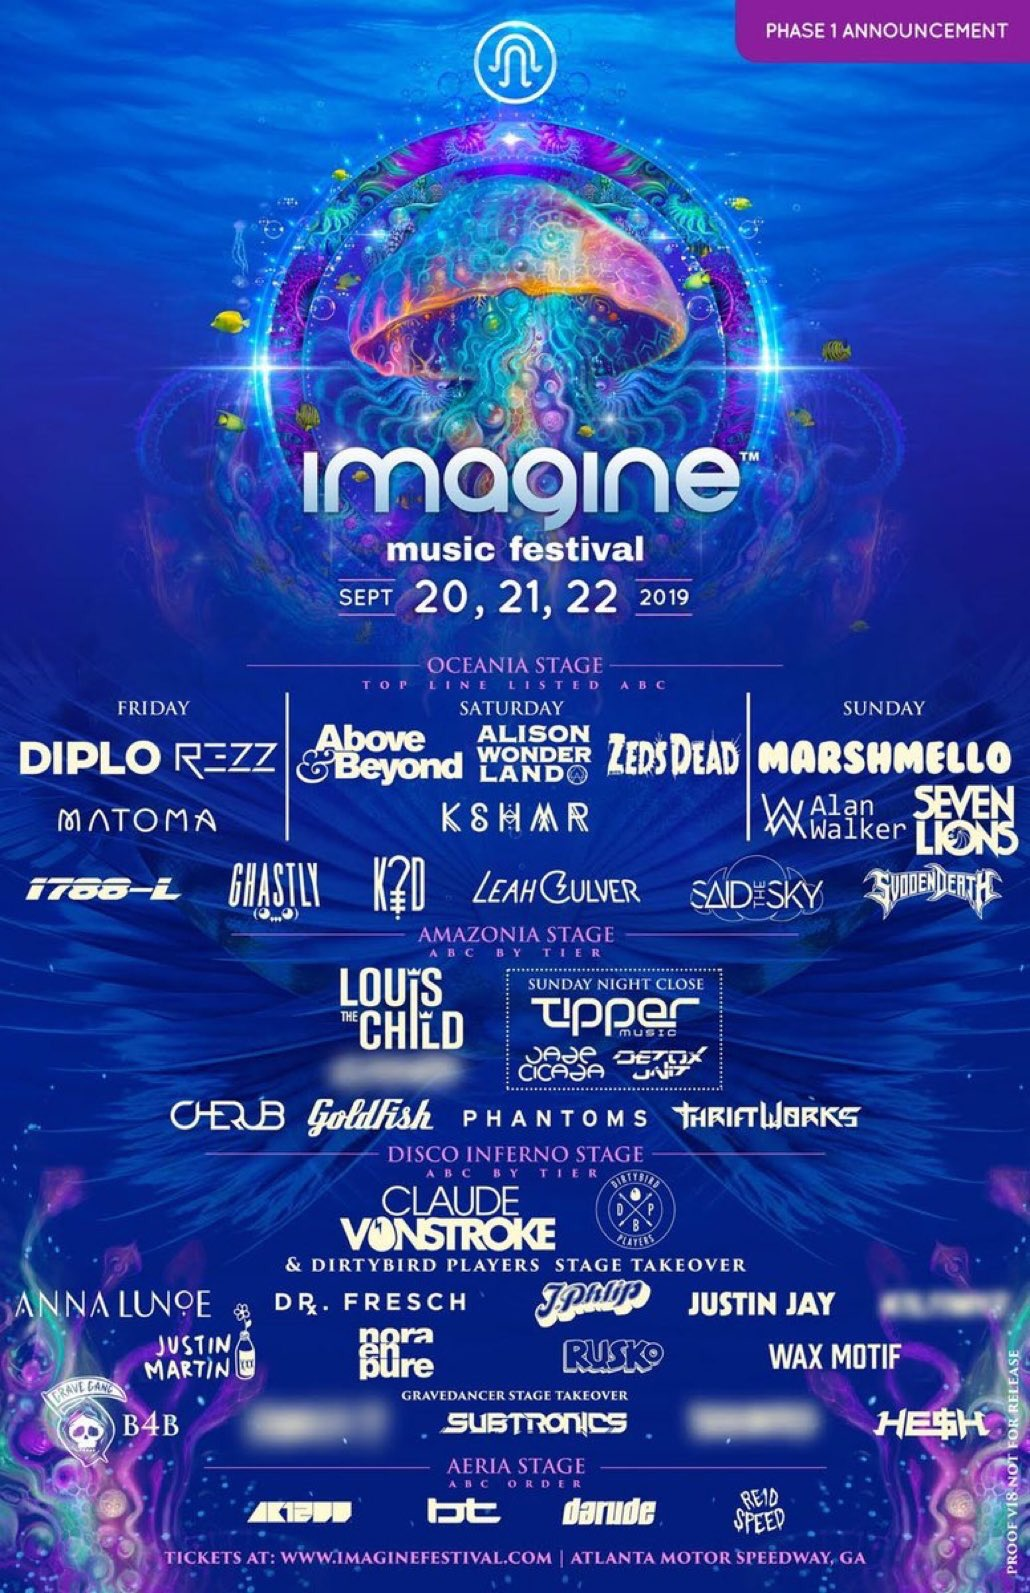 Imagine Music Festival 2019 Phase 1 Lineup